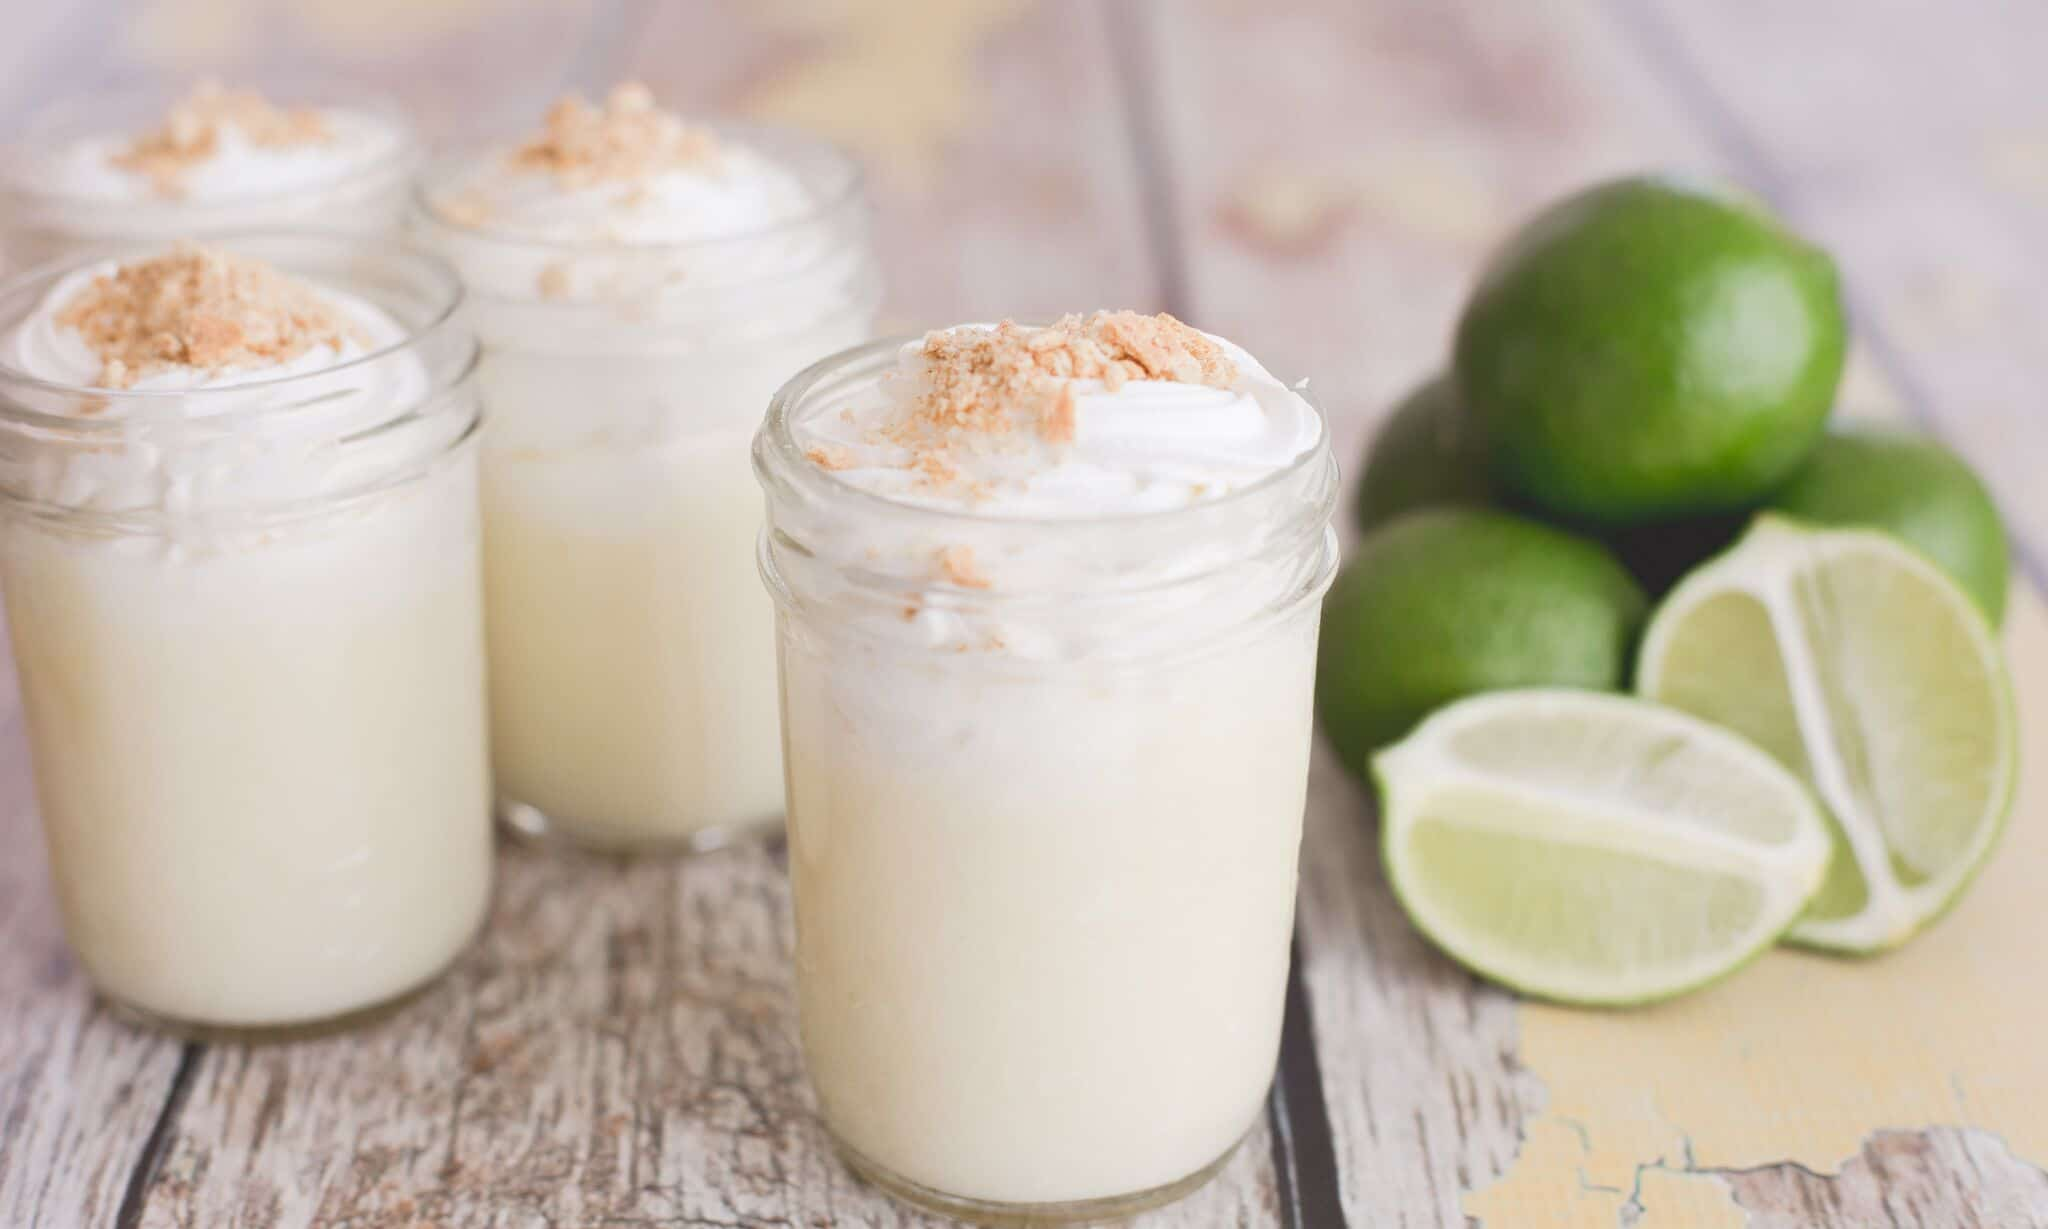 Store this key lime custard in mason jars and top with whipped cream and graham crackers